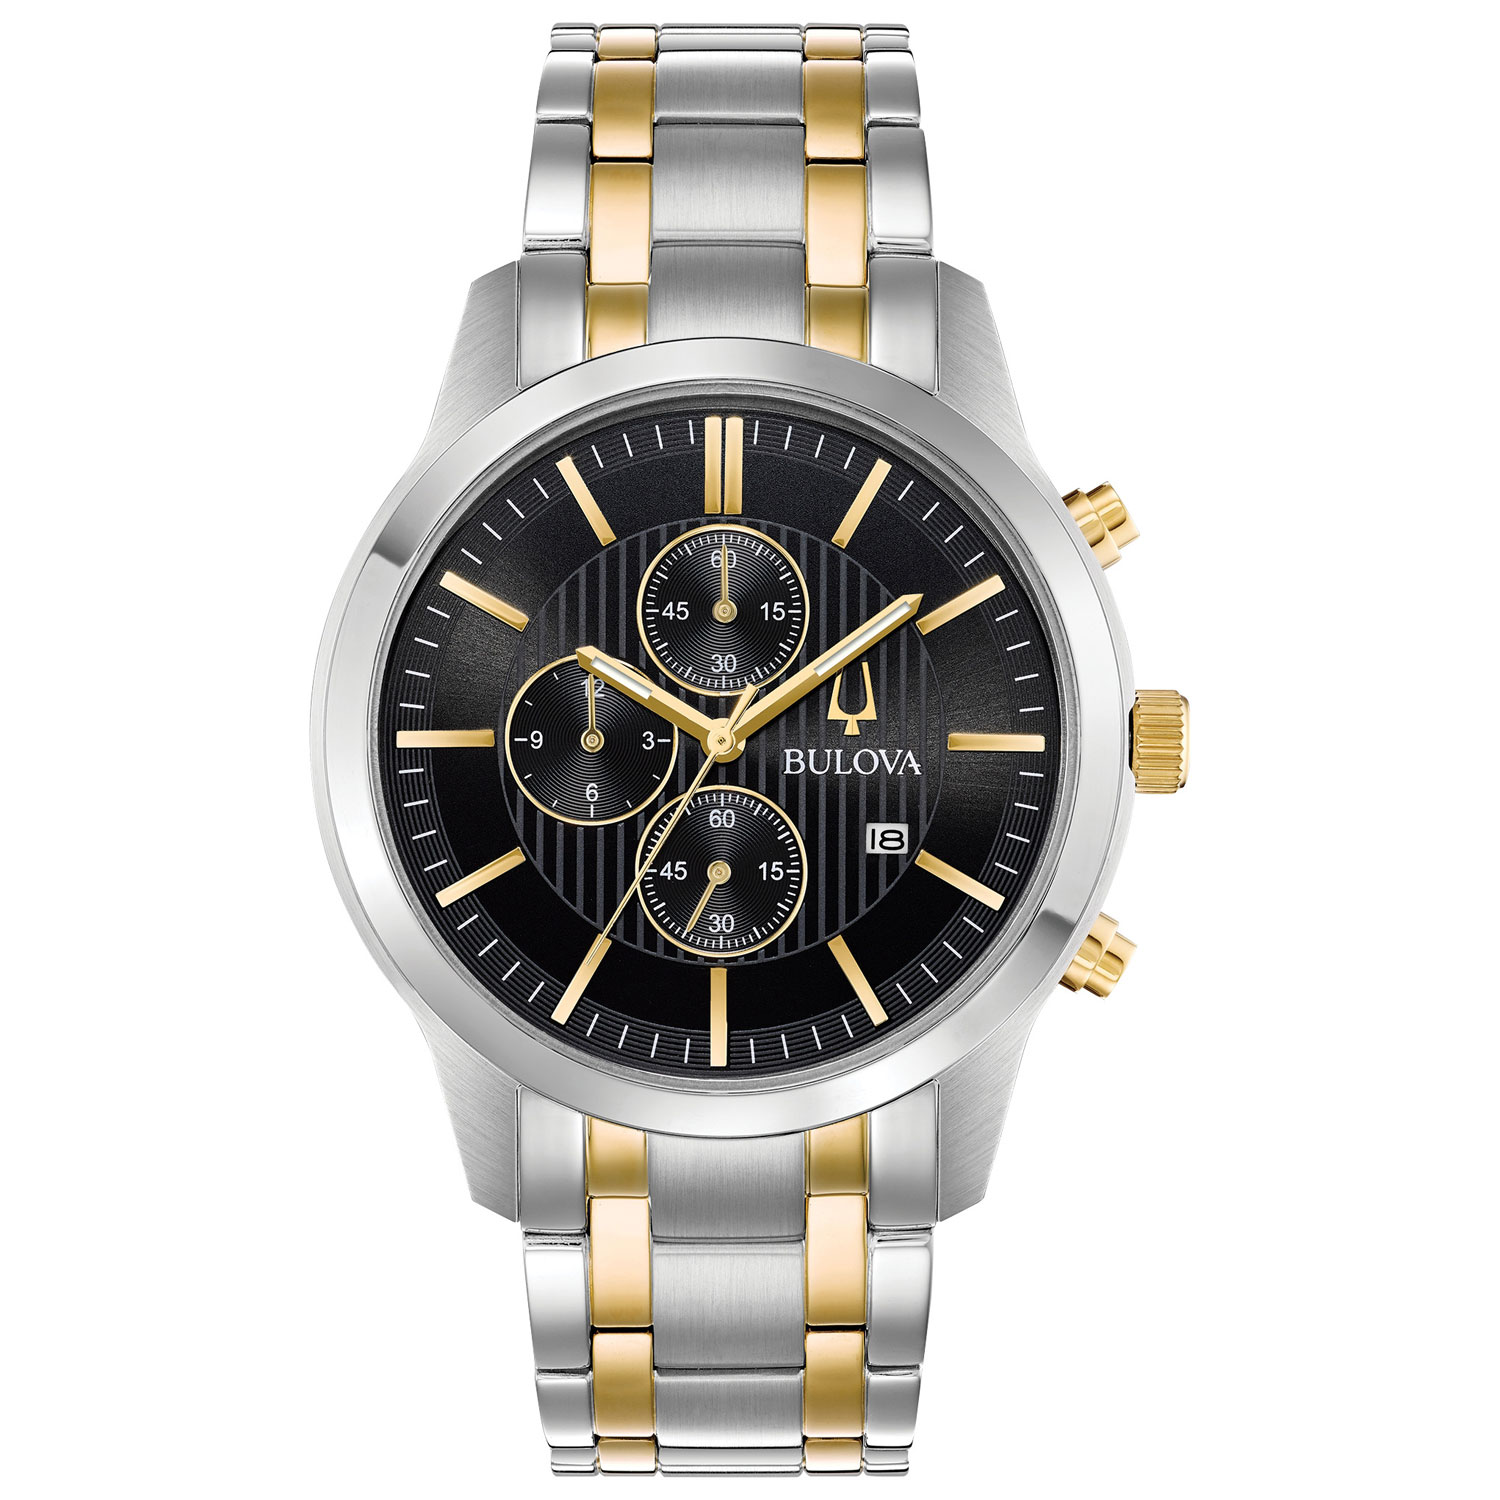 en ca gold buy black analog mens watch dress chronograph men watches more silver s sports best bulova canada category